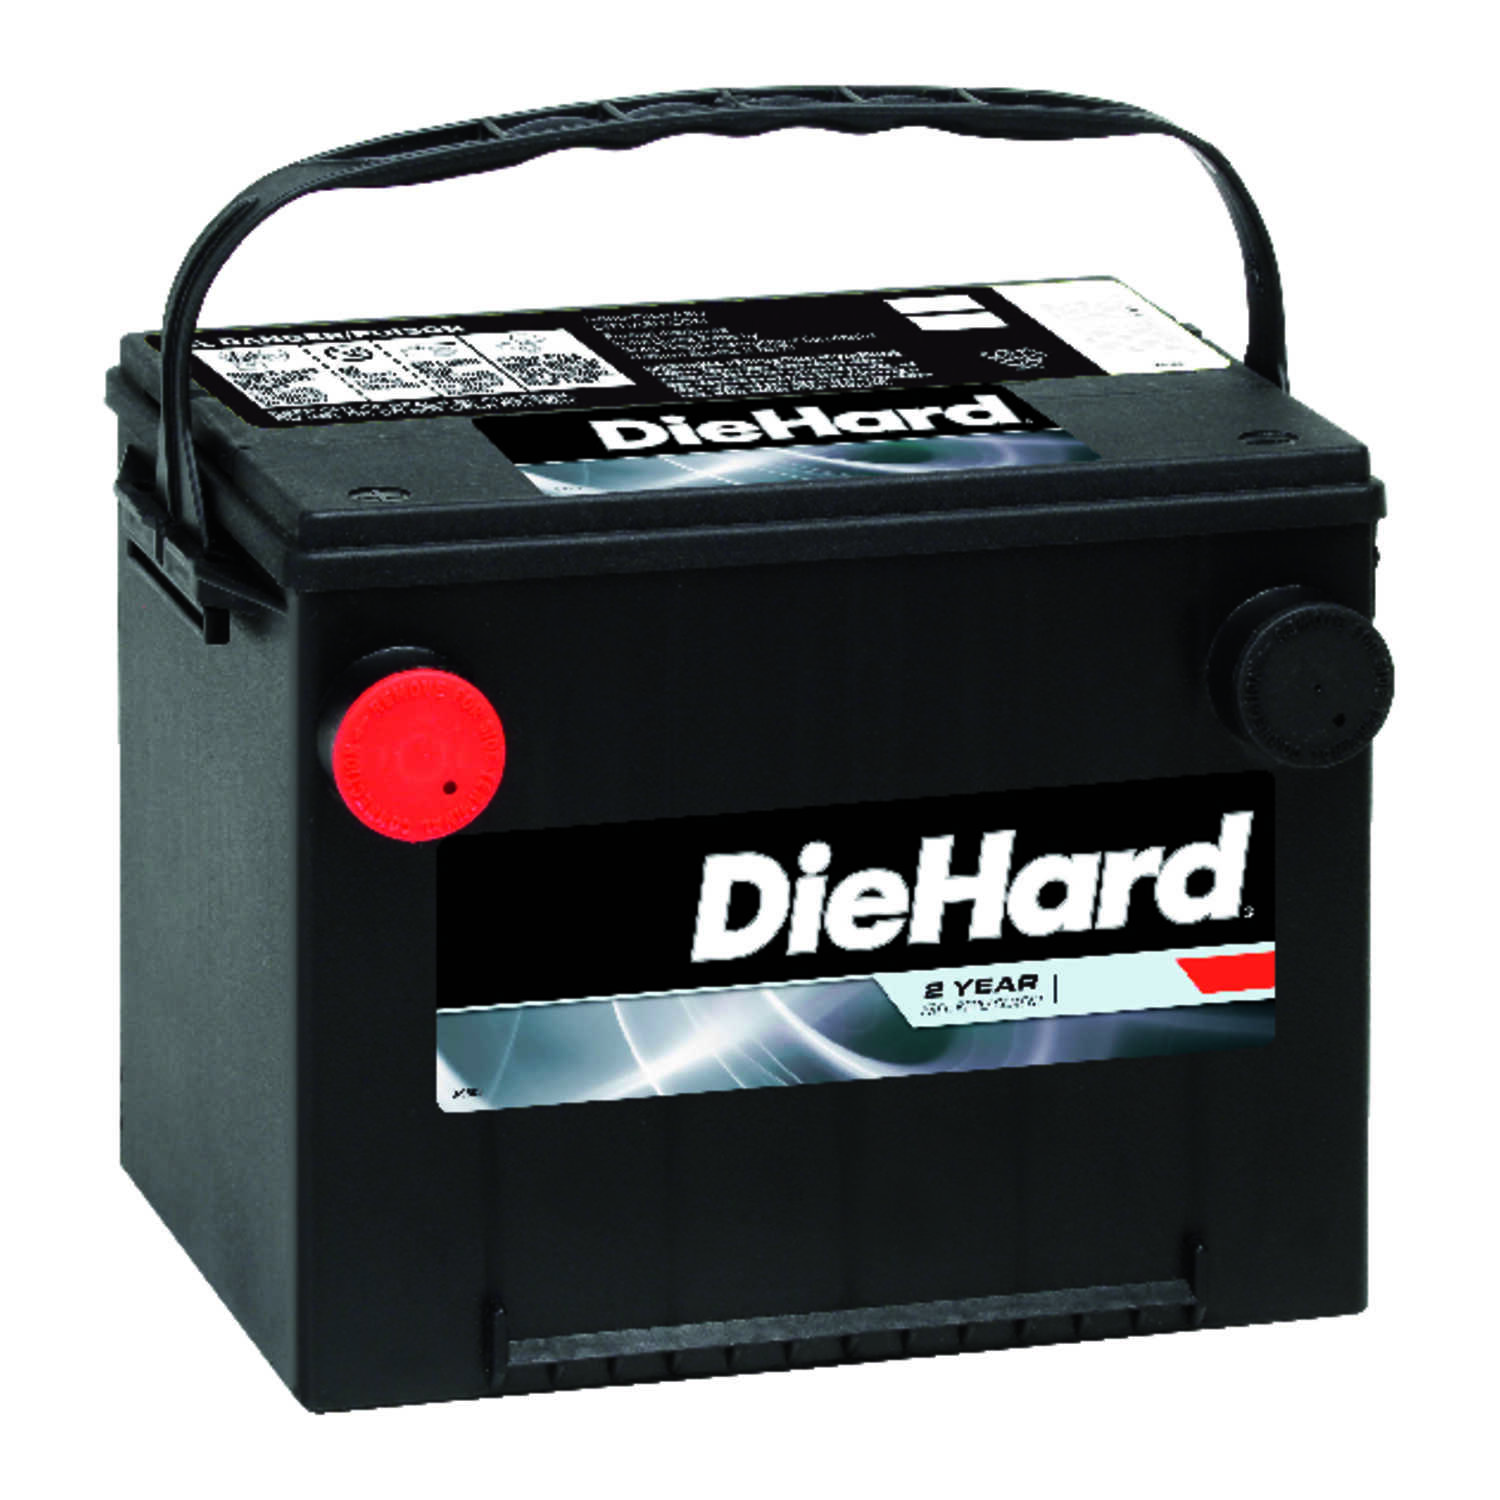 DieHard  Sealed 635 amps Automotive Battery